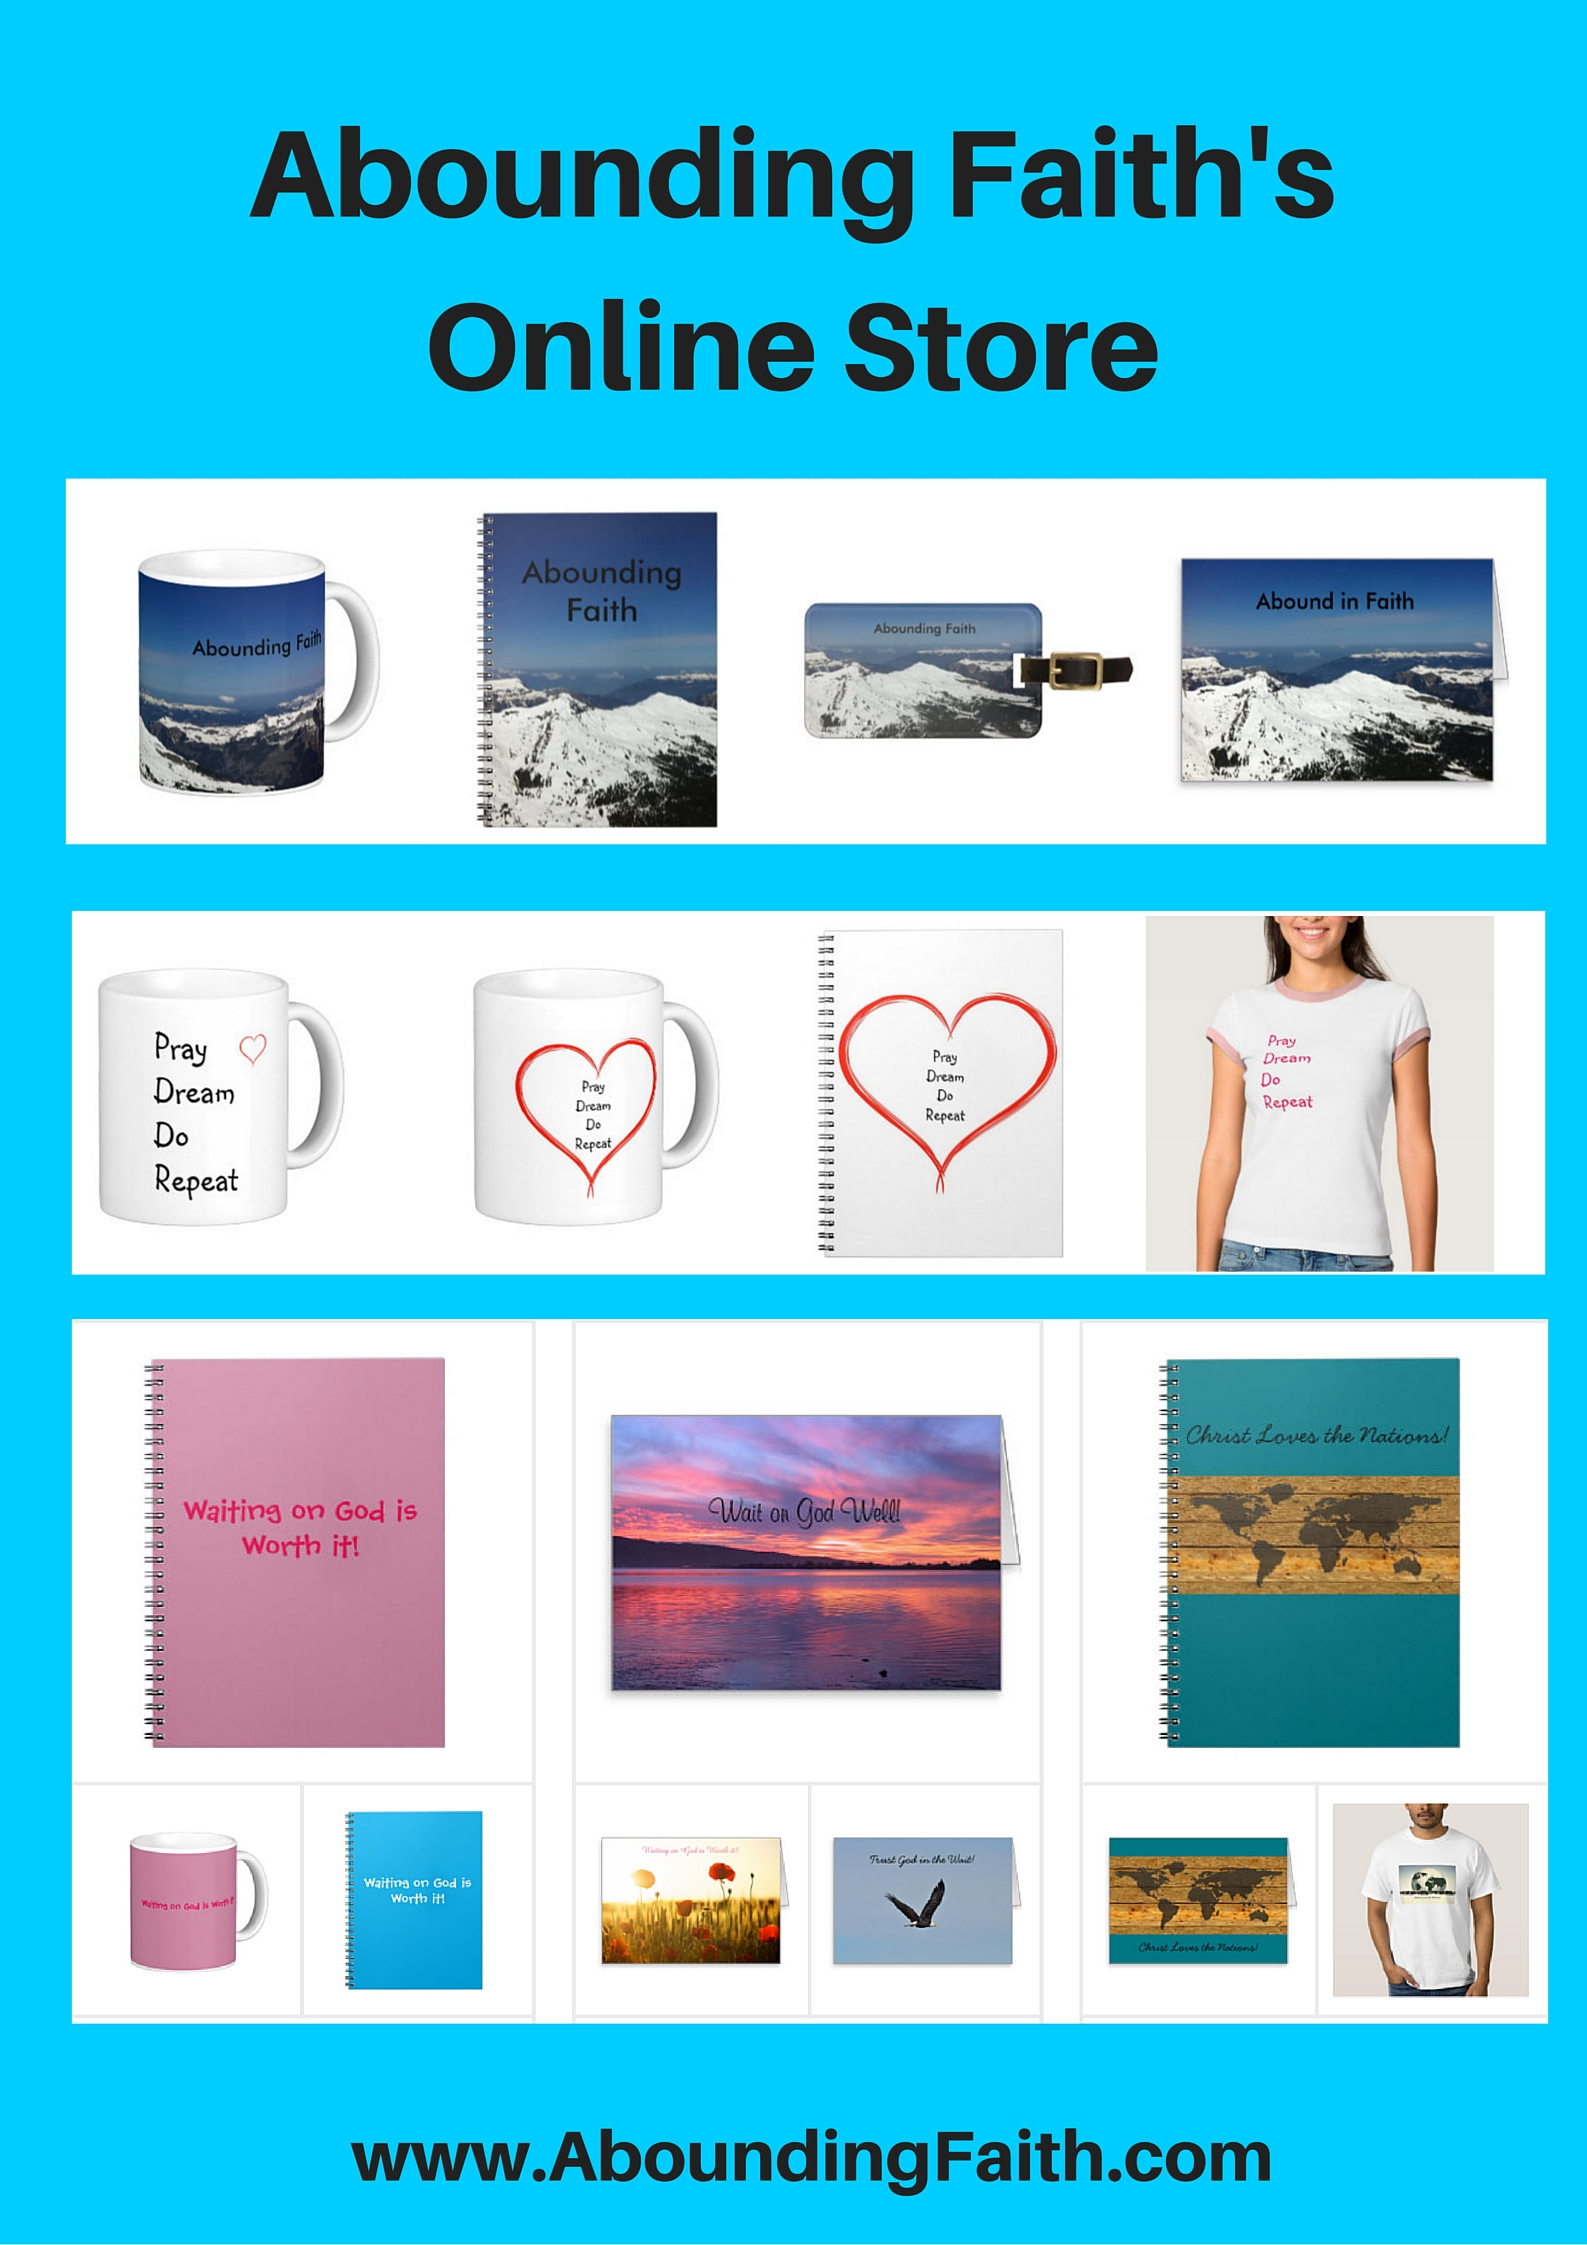 Abounding Faith's Online Store